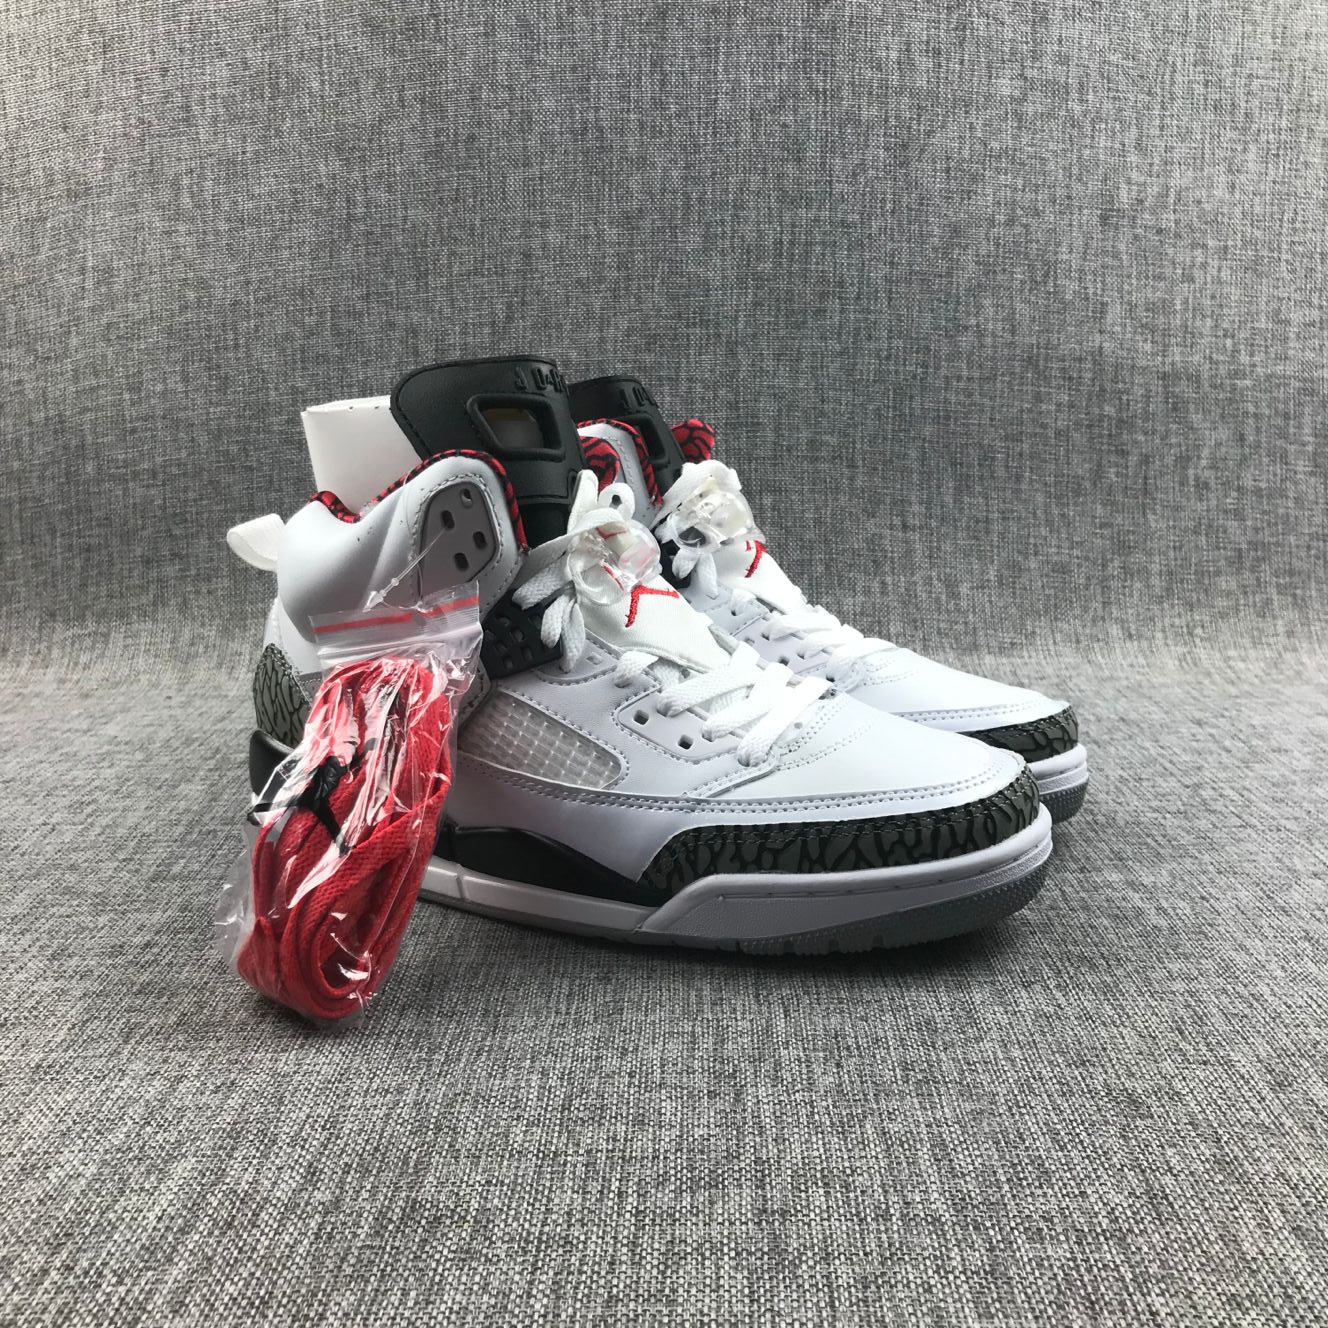 2020 Men Jordan Spizike GG White Volt Black Shoes